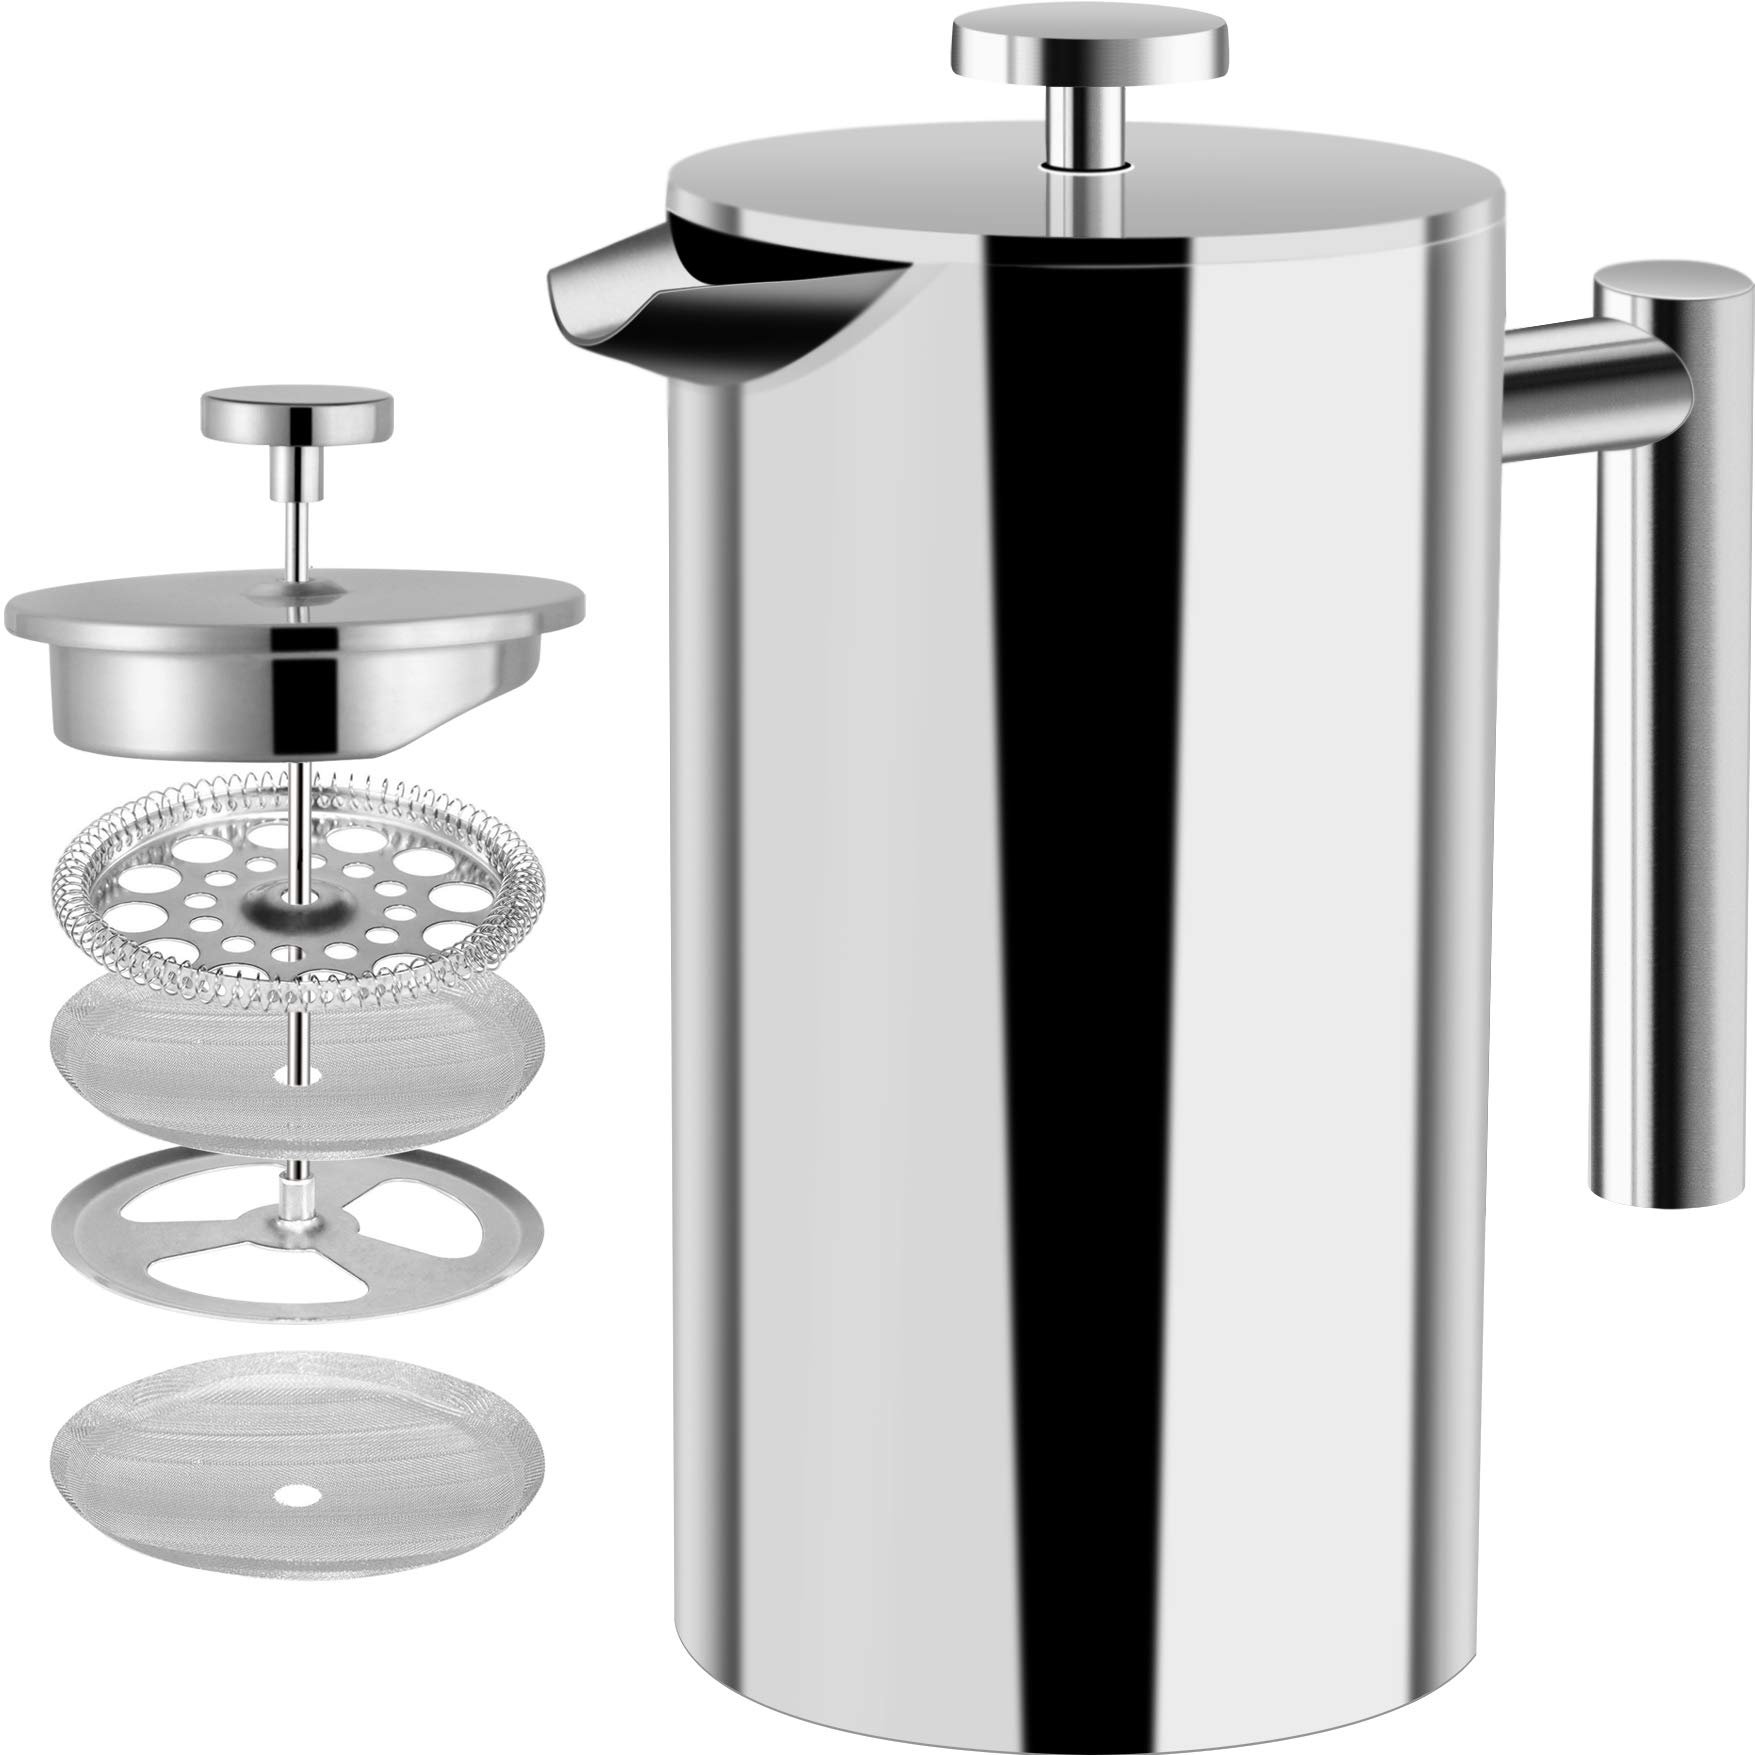 Double Wall French Press Coffee Maker - 32 oz Espresso & Tea Maker - Stainless Steel - by Utopia Kitchen by Utopia Kitchen